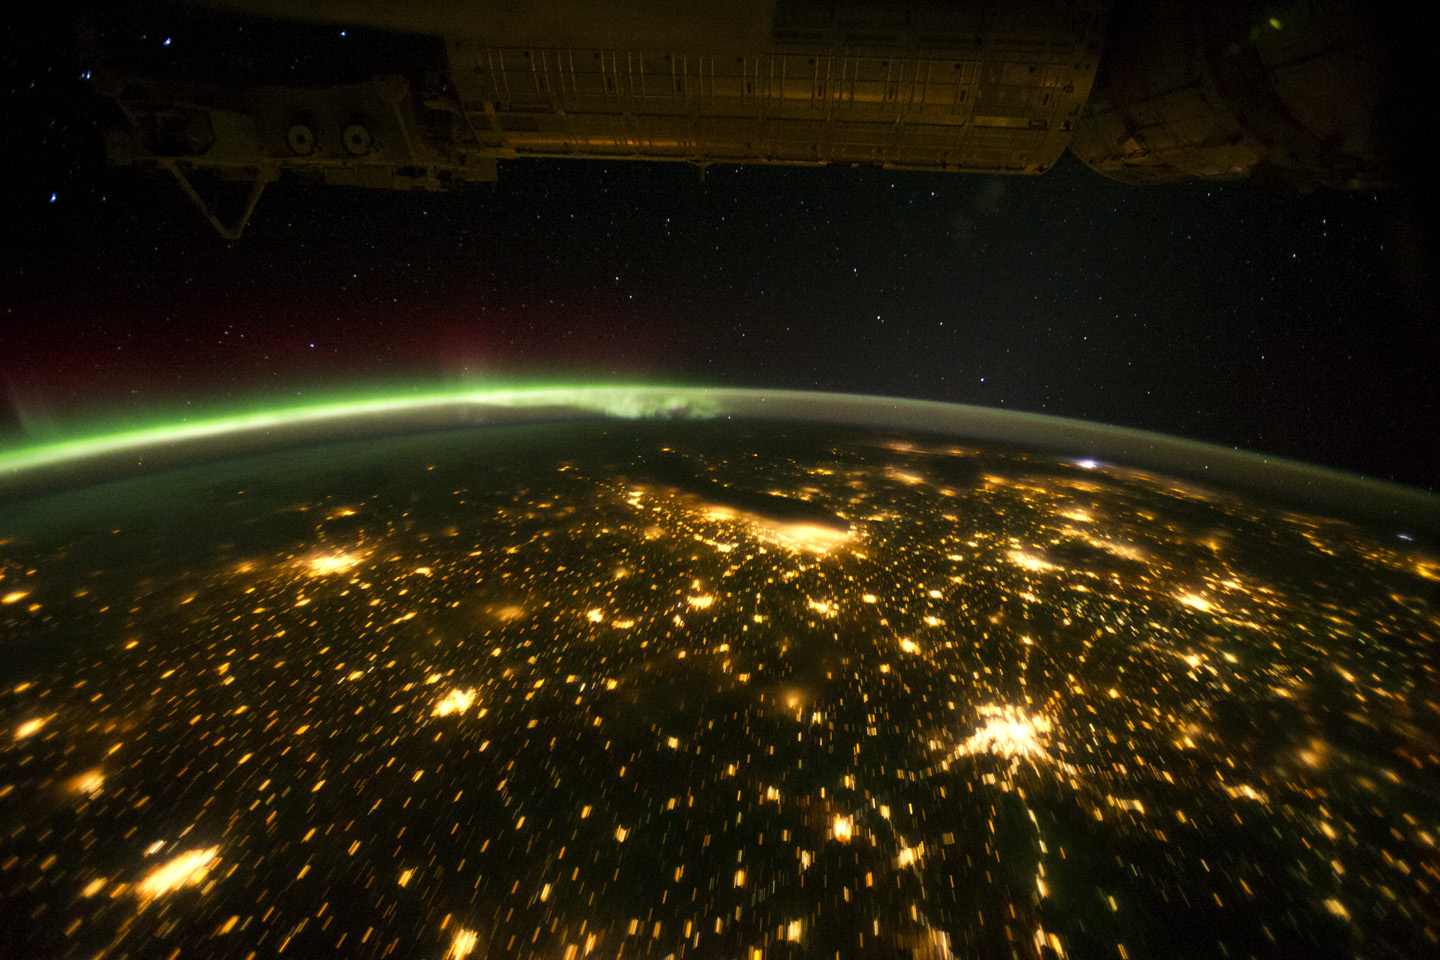 Today's Image of the Day comes from the NASA Earth Observatory and features a look at the aurora borealis glowing over the midwestern United States.